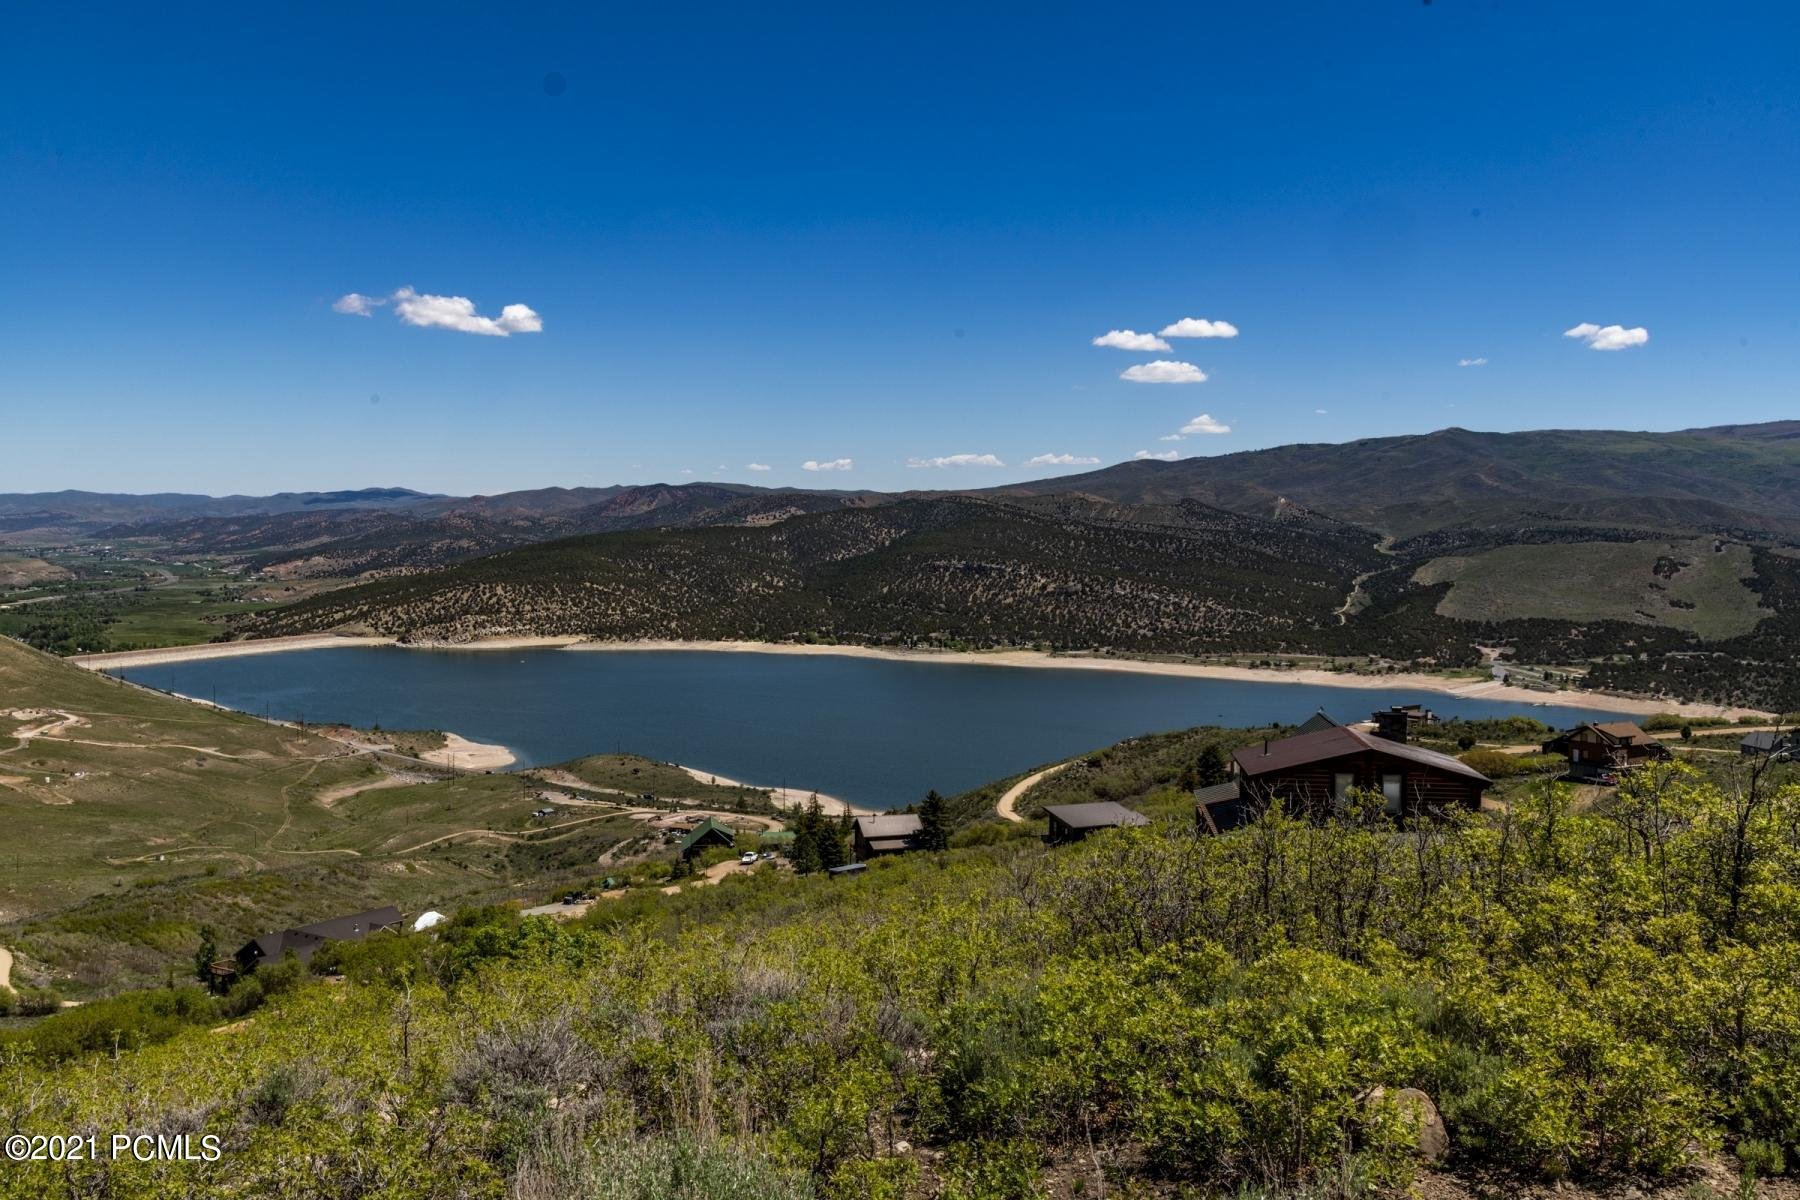 You will find this stunning lot with spectacular lake and mountain views in Rockport Estates, a gated community that is only 20 minutes from Park City with easy access to I-80 or scenic Browns Canyon. The ideal location for year around beauty and recreation with spectacular views. Build your dream home now!